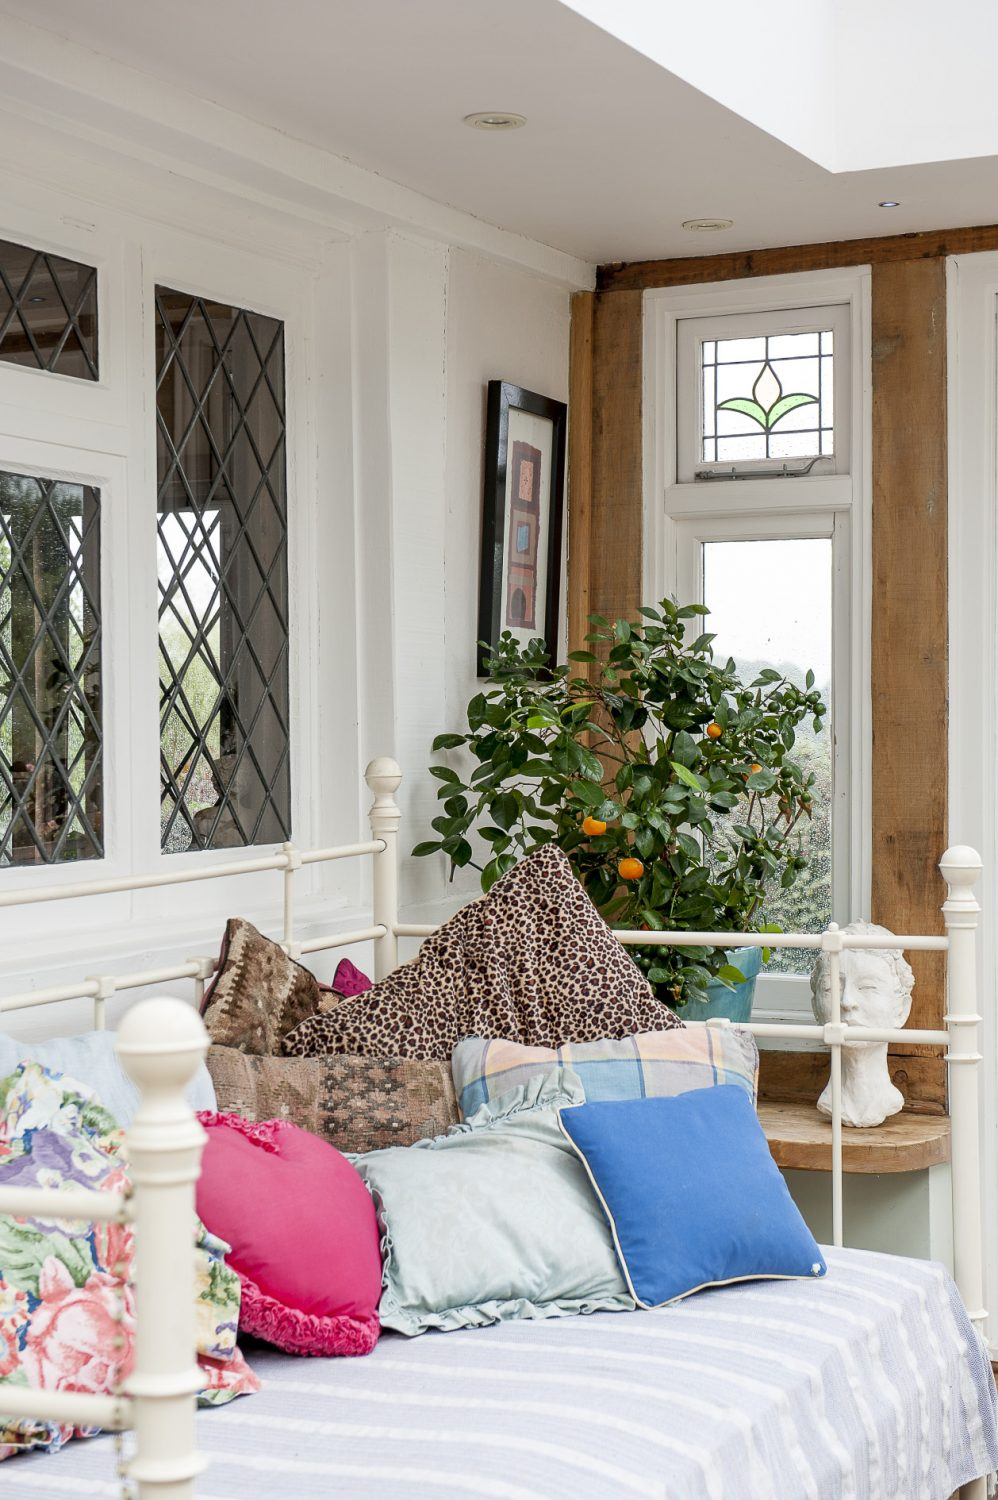 A relaxing space in the Garden Room